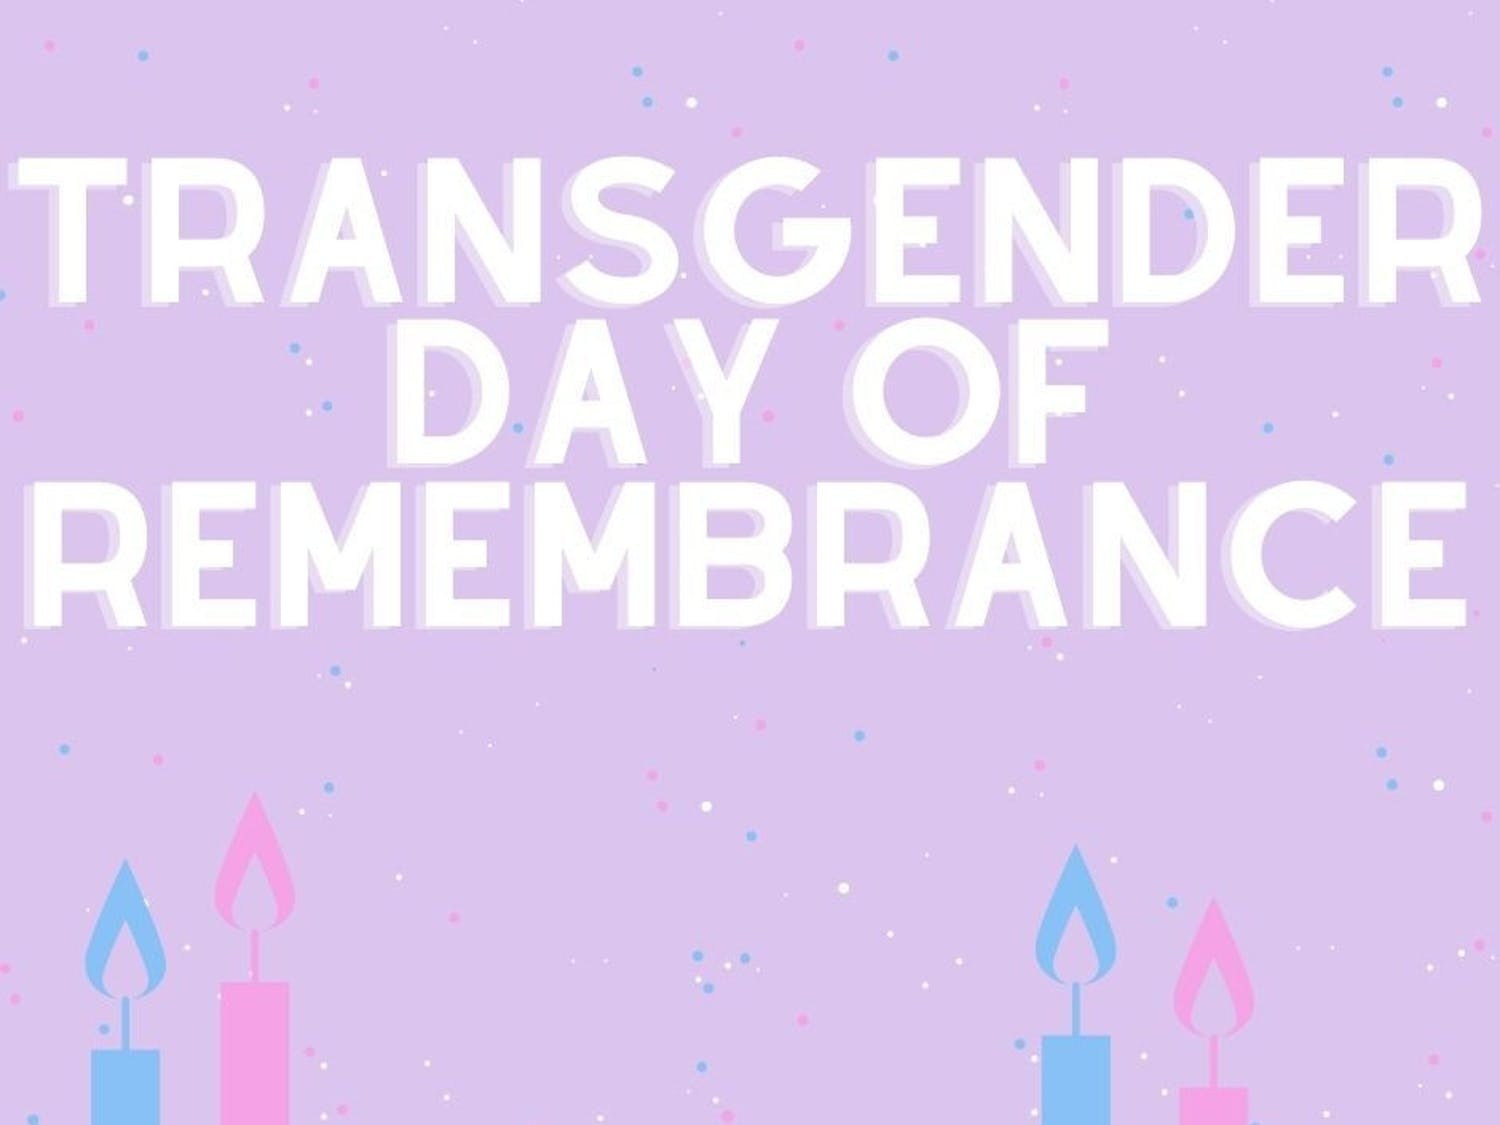 Held annually on Nov. 20, Transgender Day of Remembrance commemorates those lost to anti-transgender violence.